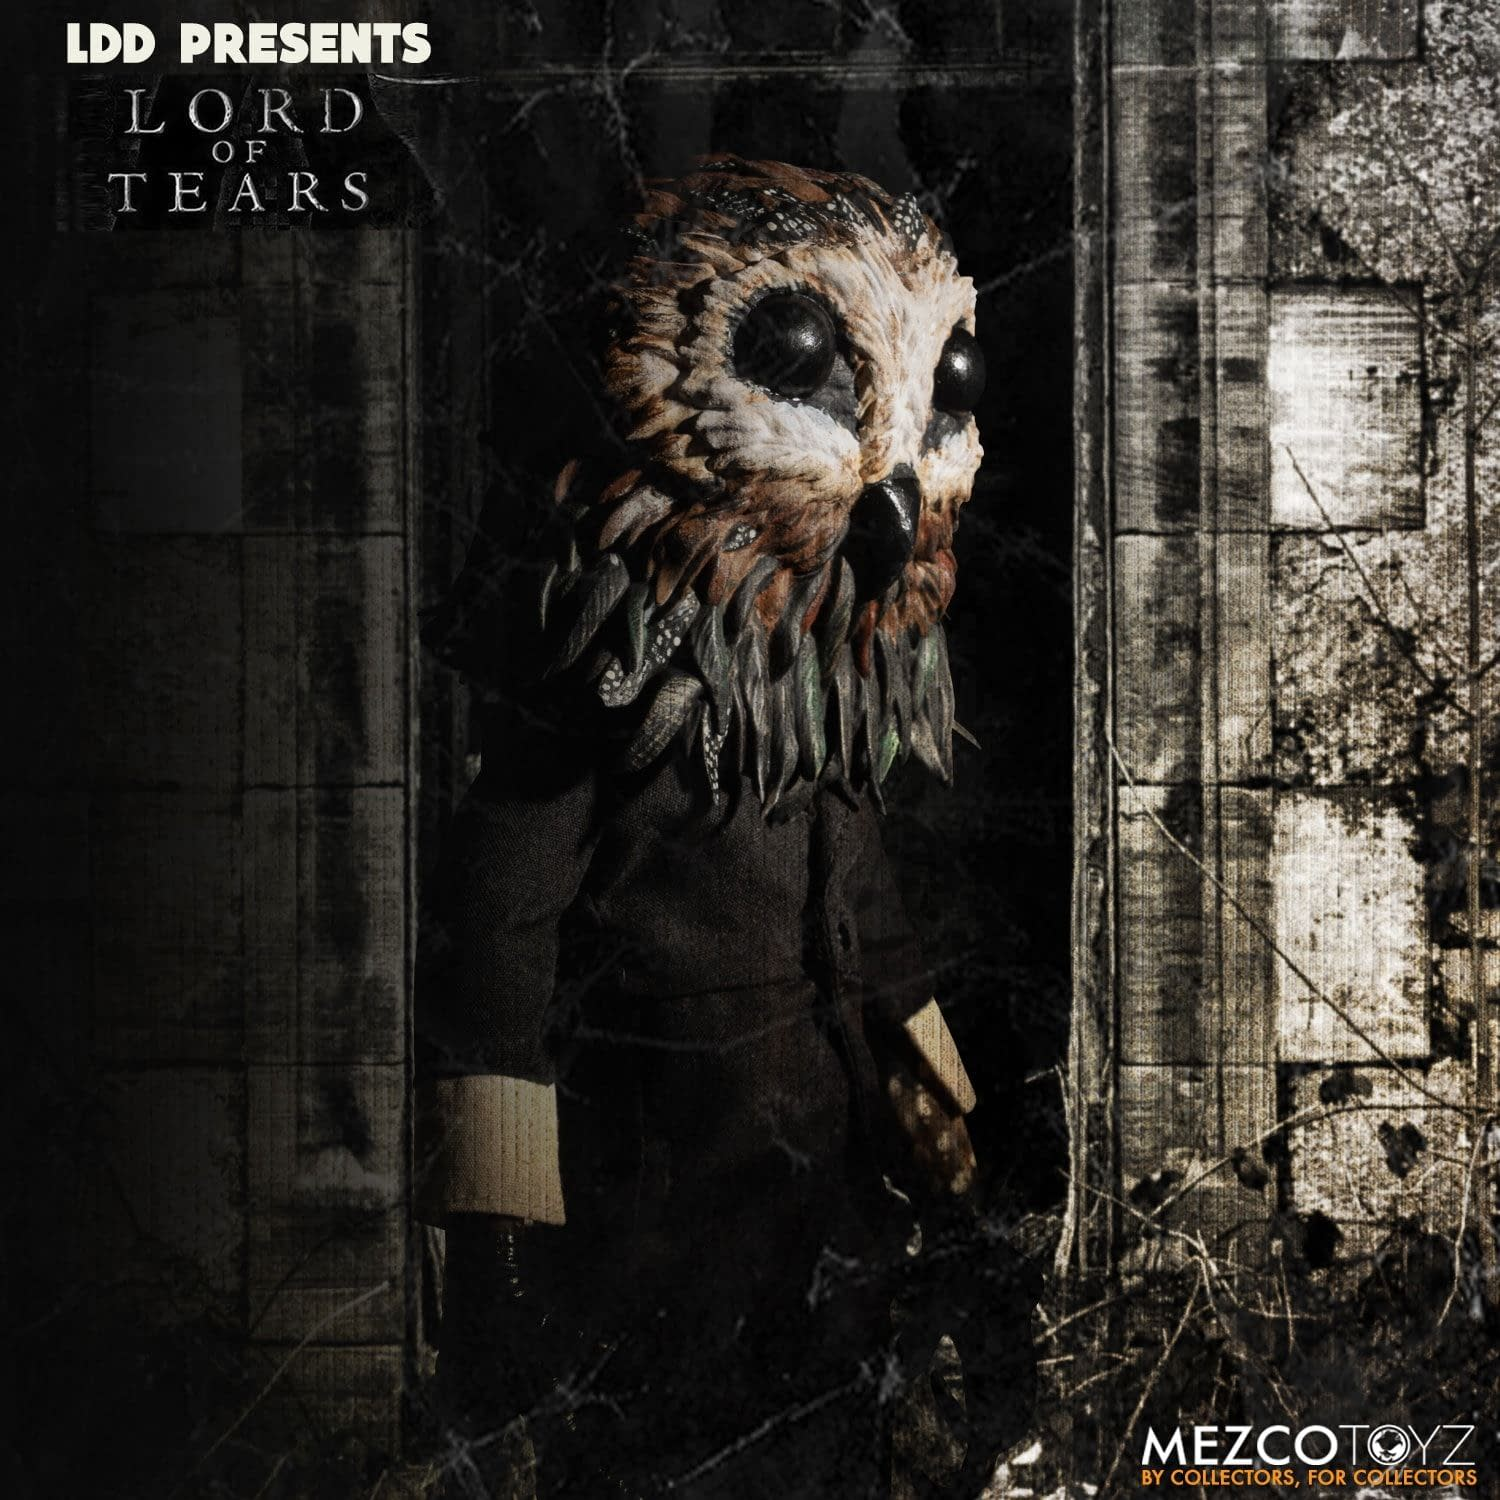 Owlman Is Here and He Wants Your Soul in New LDD from Mezco Toyz